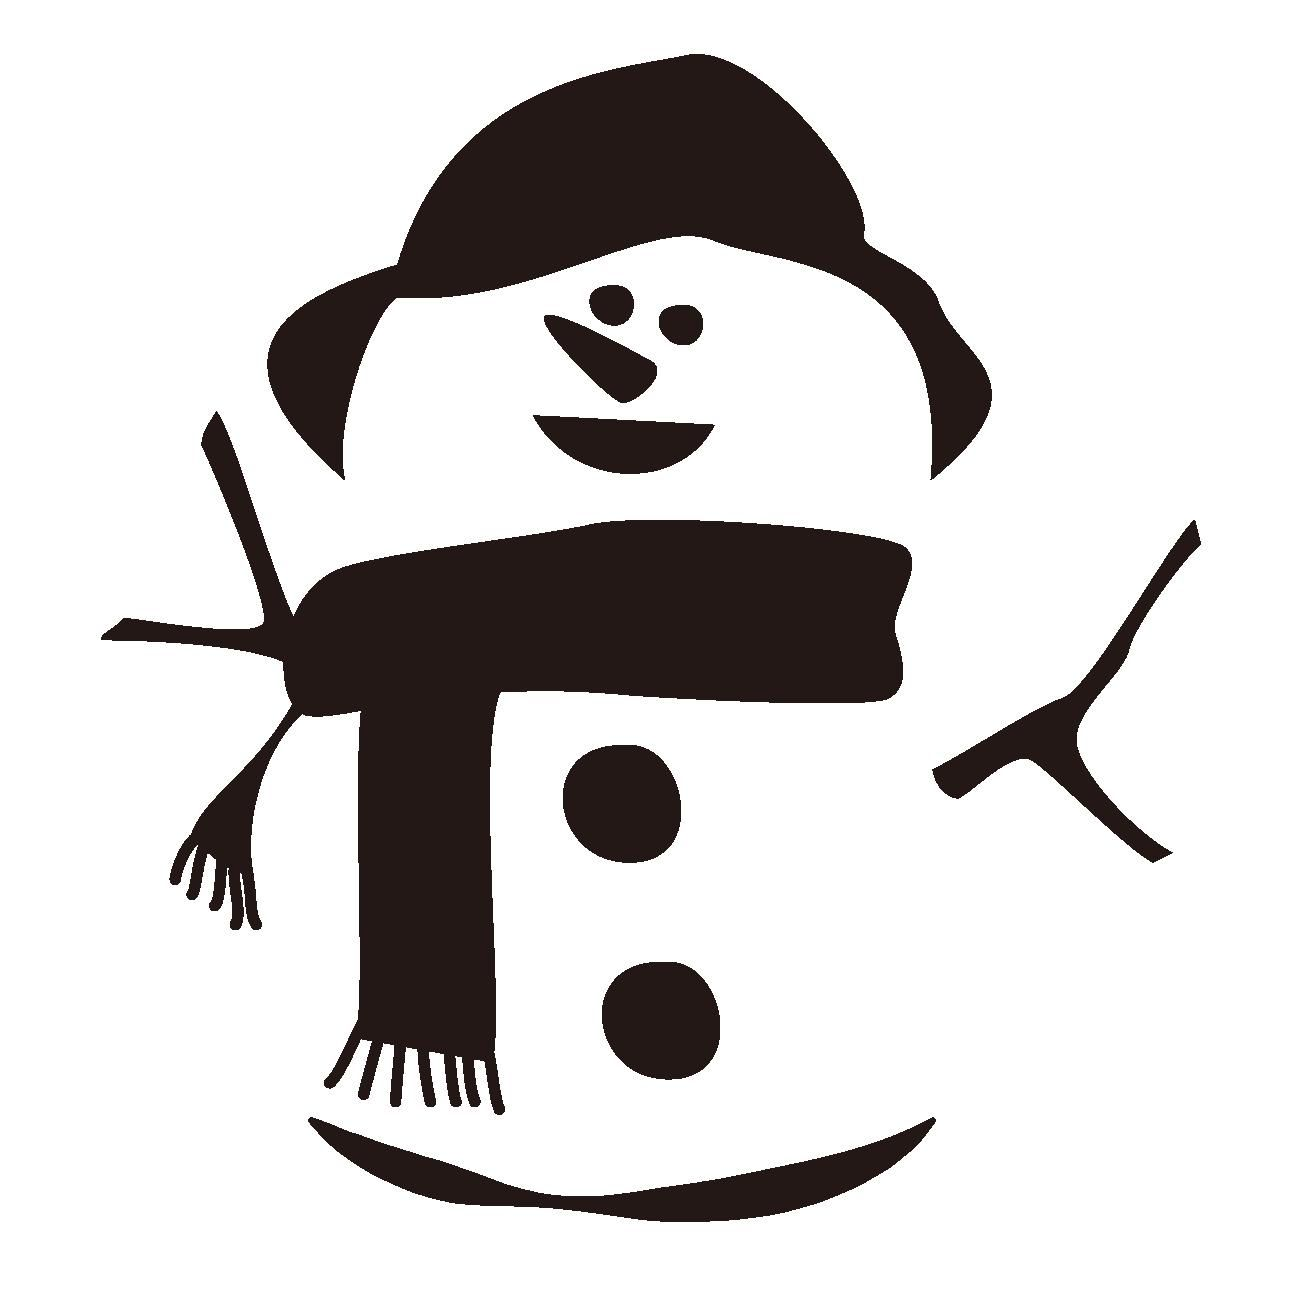 Snowman #christmas #silhouette #winter #snow #vector #art.